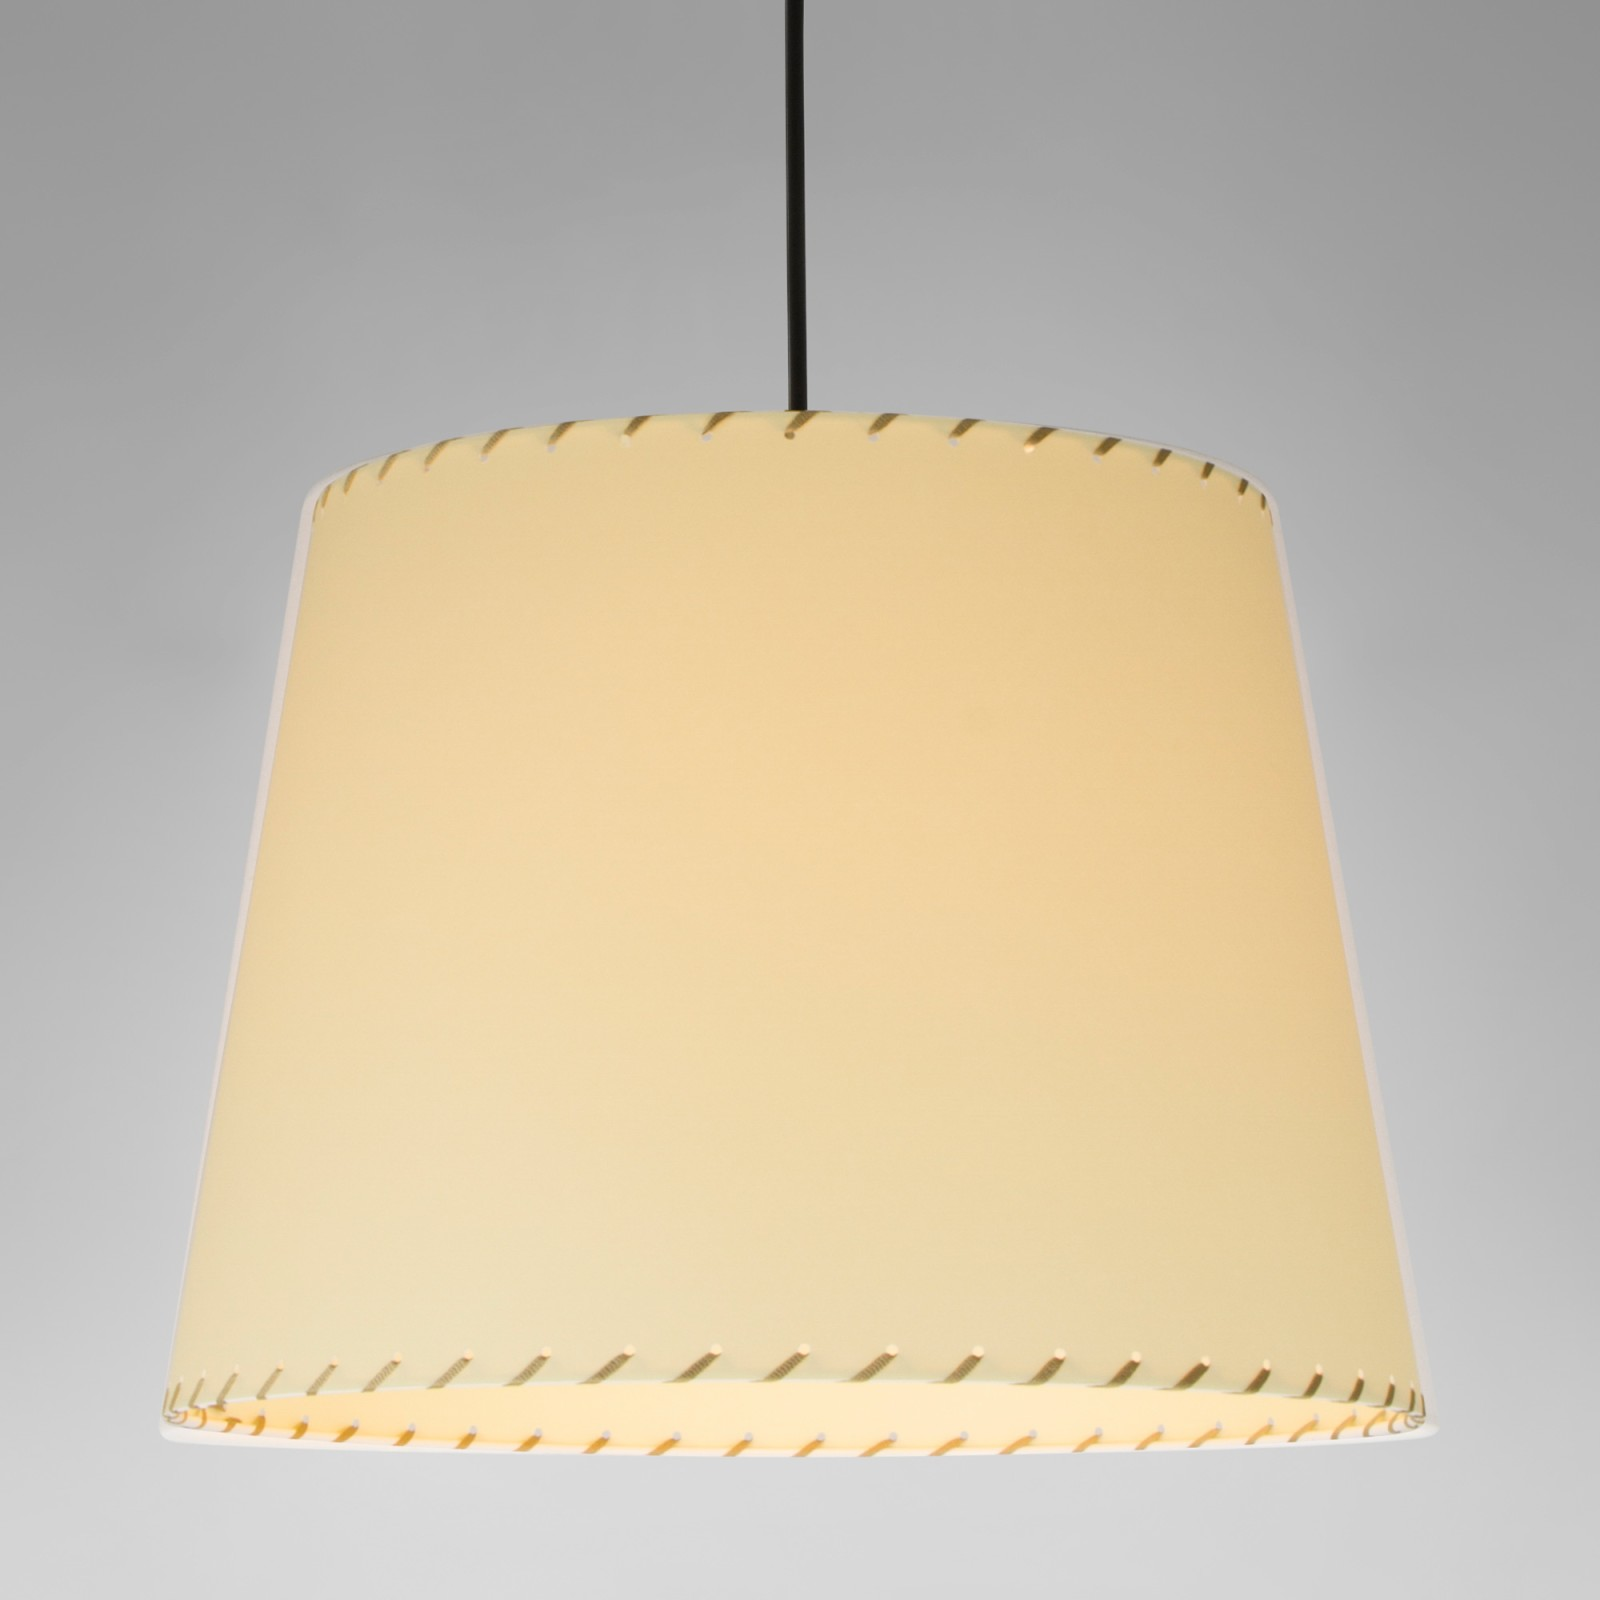 Sistema Sisisi GT3 Pendant Light Satin nickel, Stitched beiged parchment